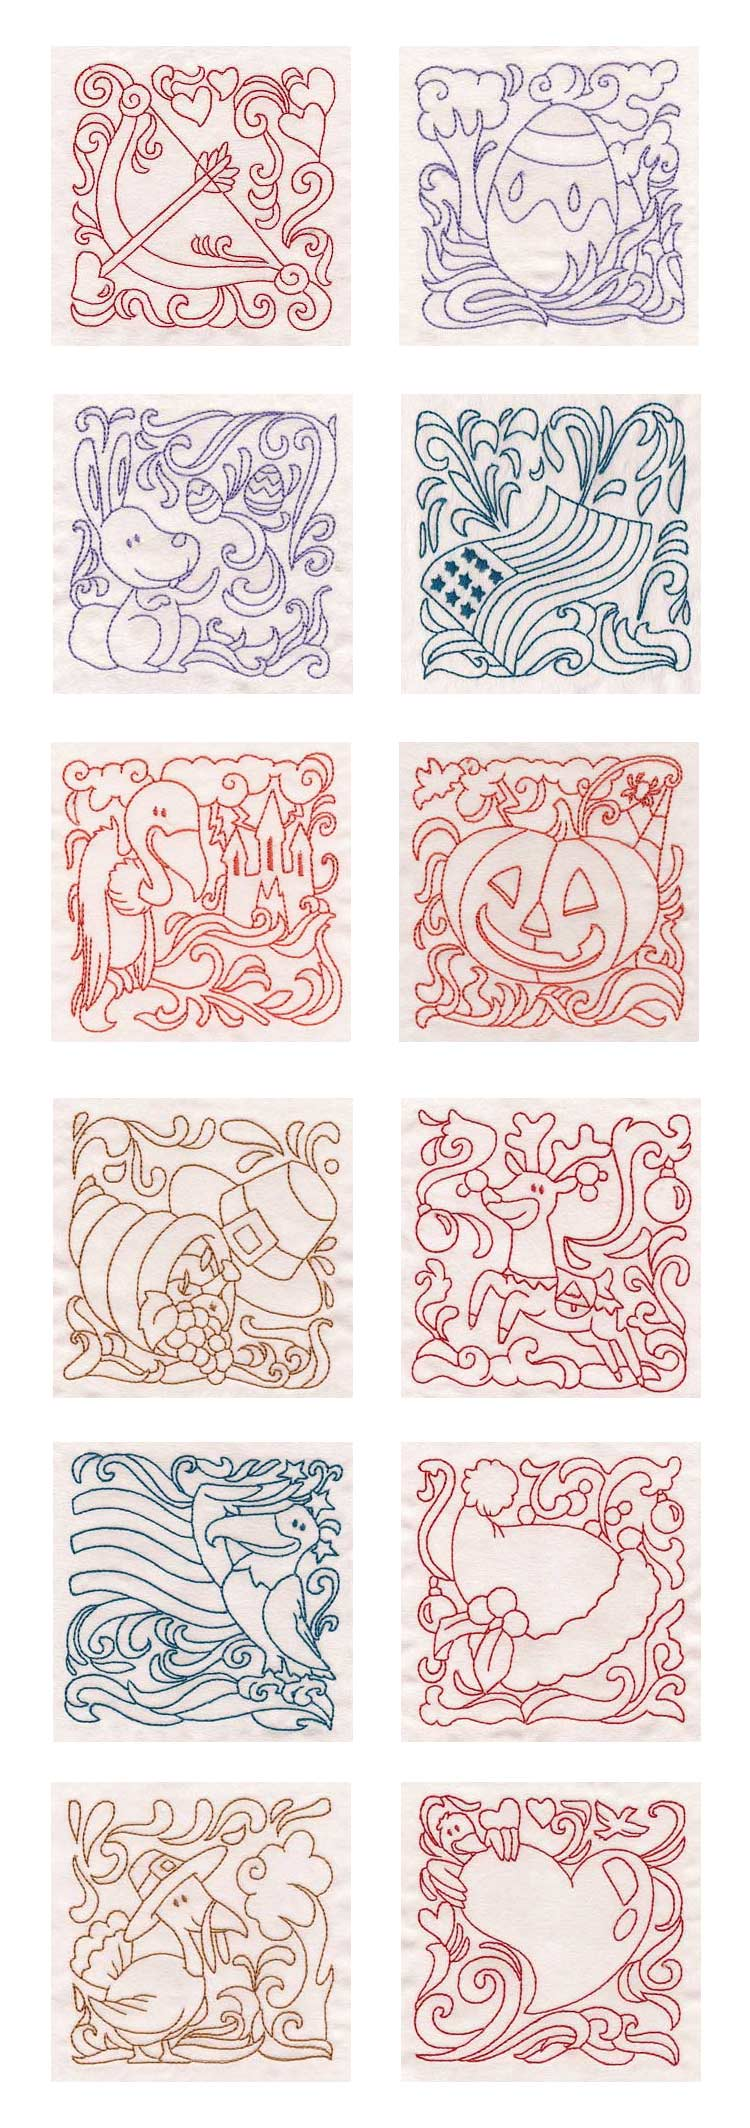 Embroidery Quilt Block Designs : Embroidery Machine Designs - Holidays Quilt Blocks Set